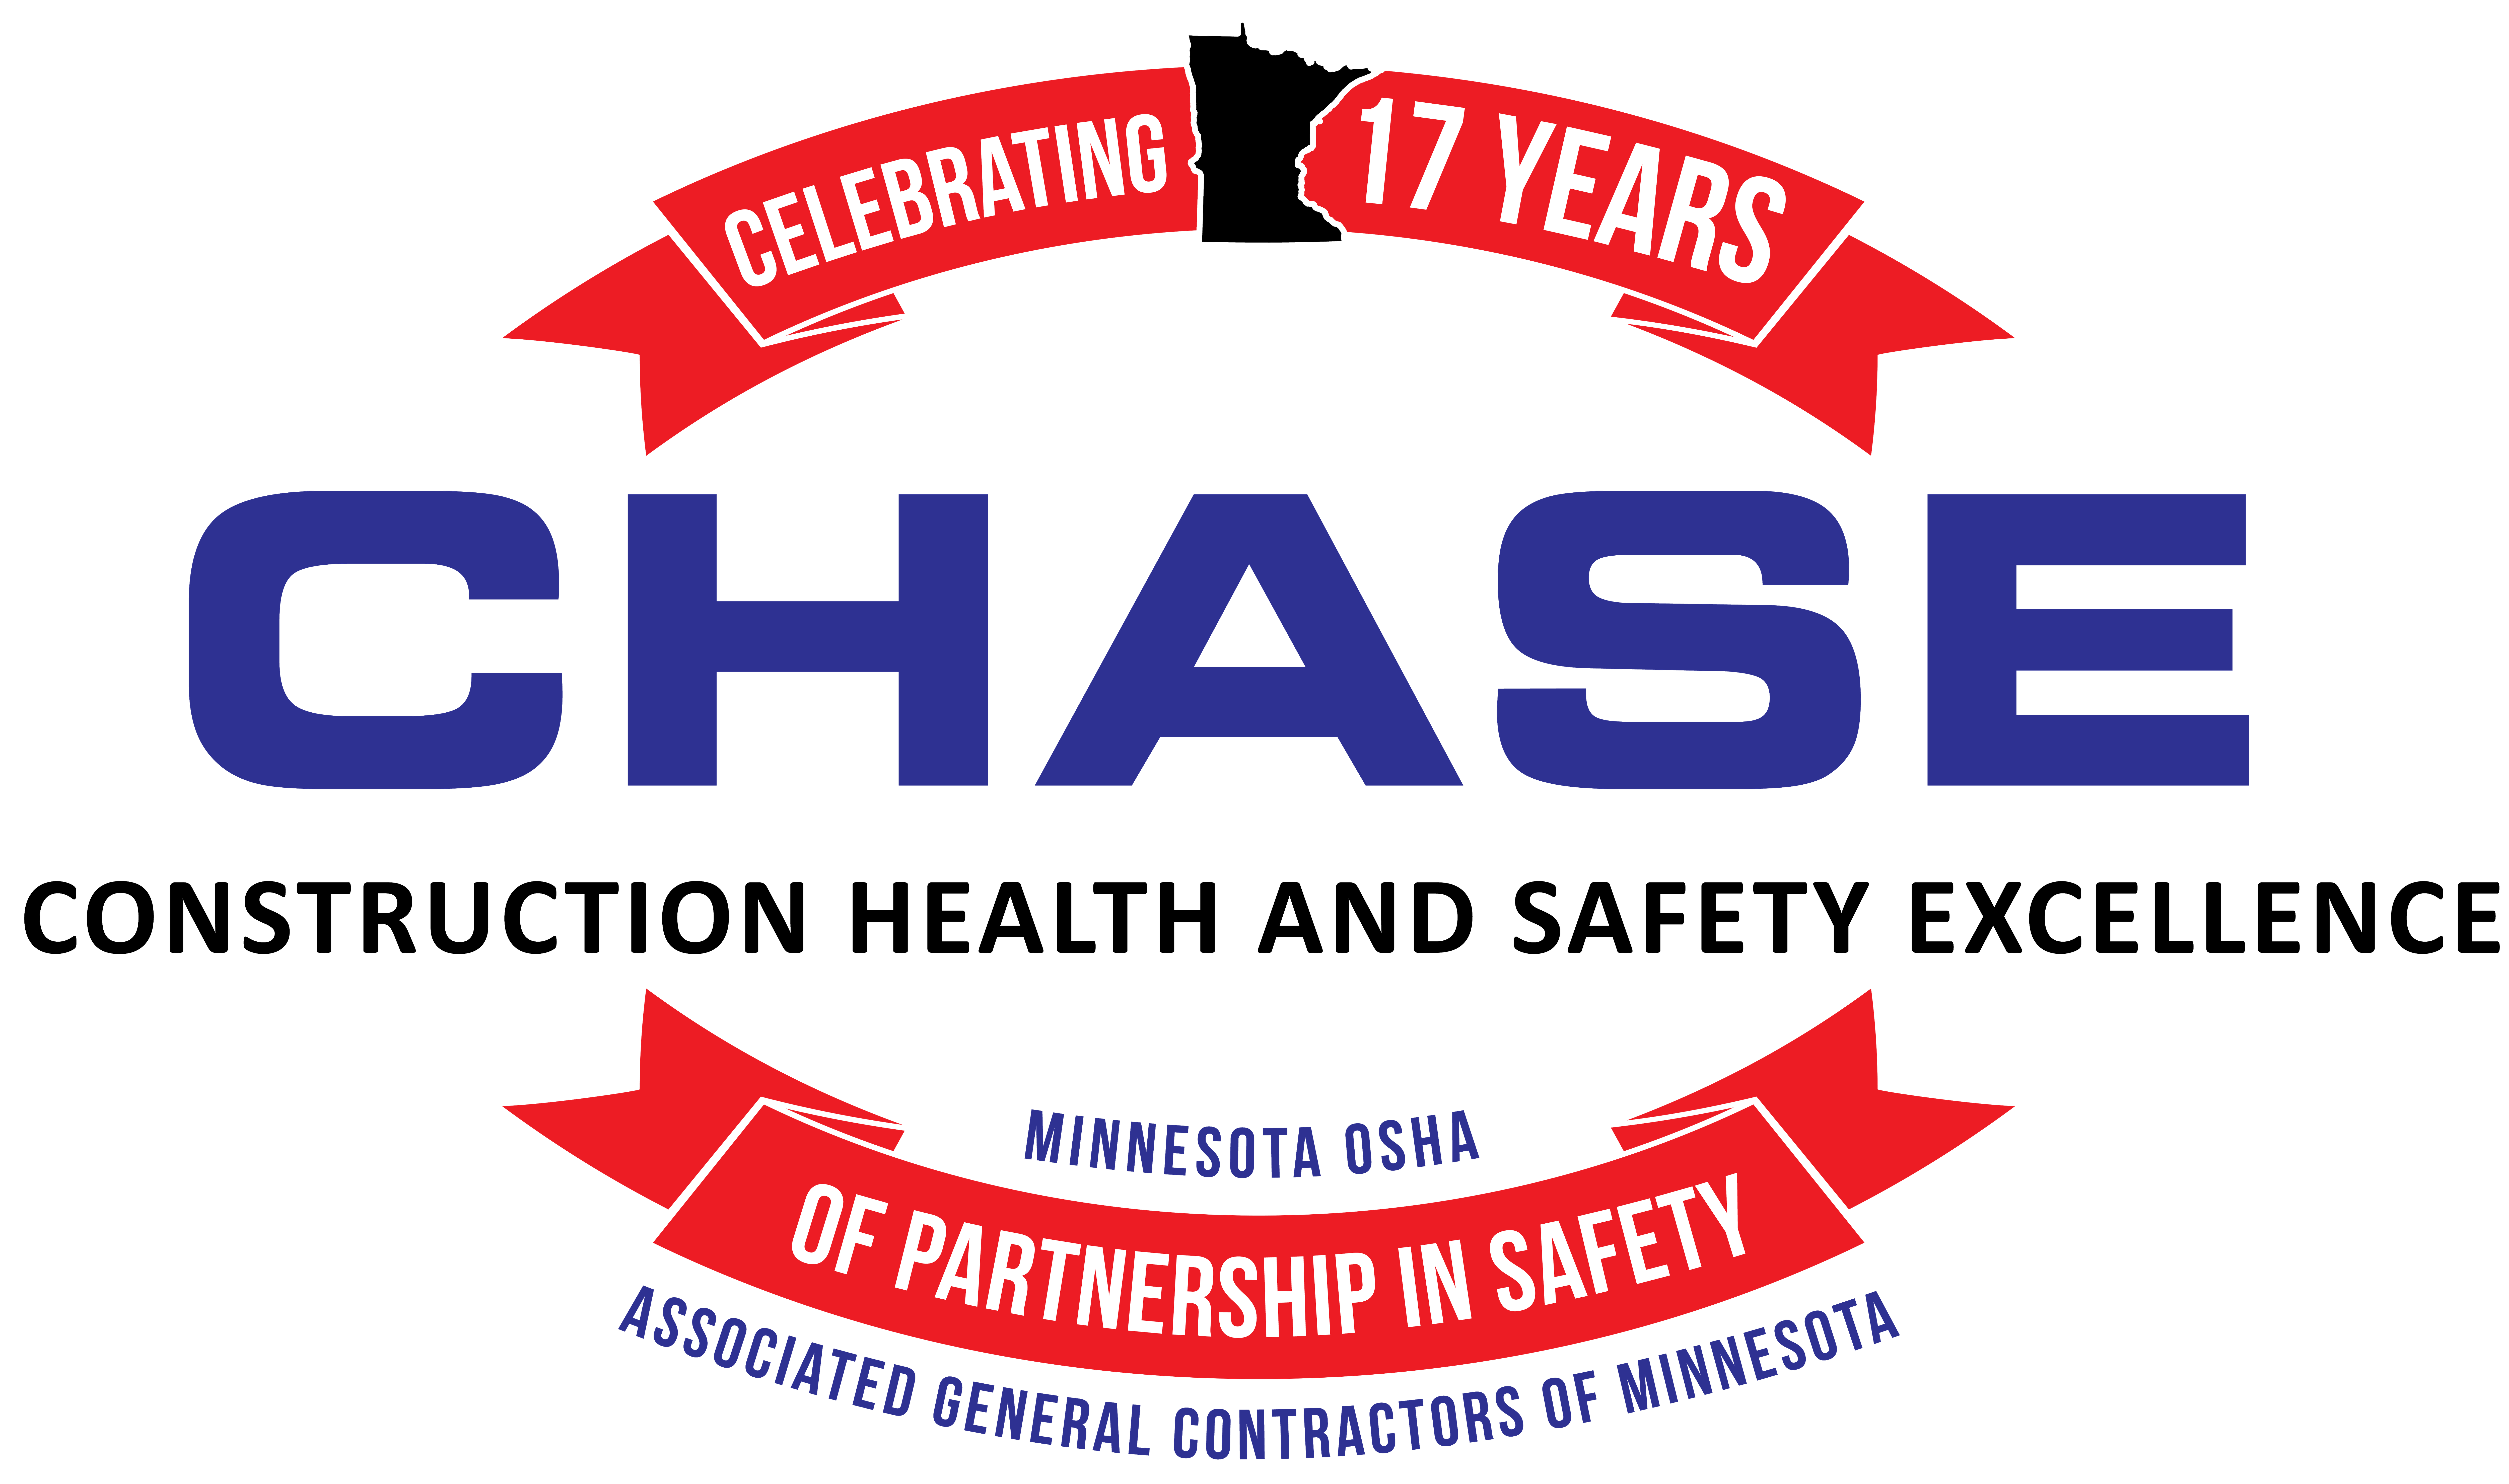 chase-17-years-logo.png